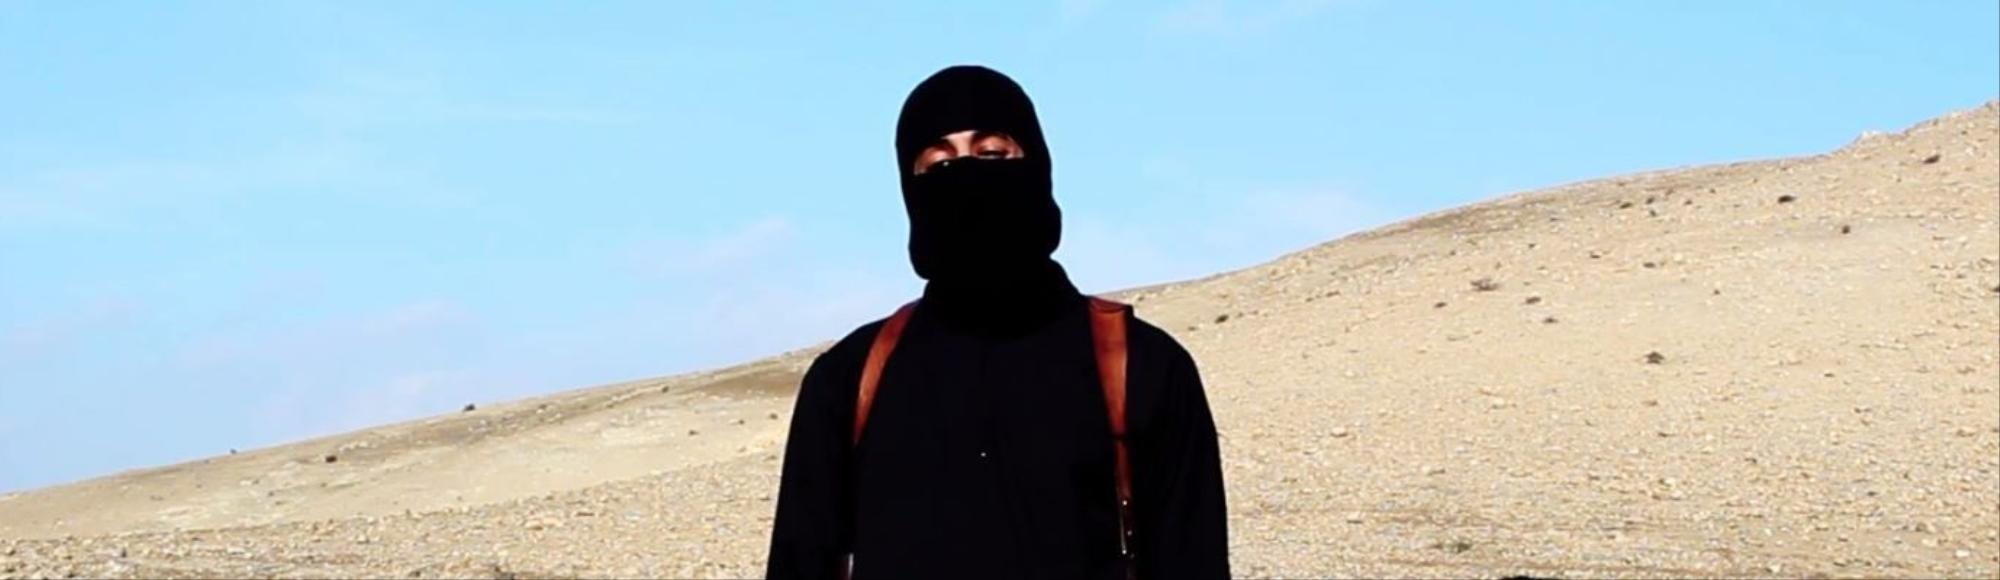 Jihadi John's Past Has Ignited a Debate About Britain's Treatment of Muslims